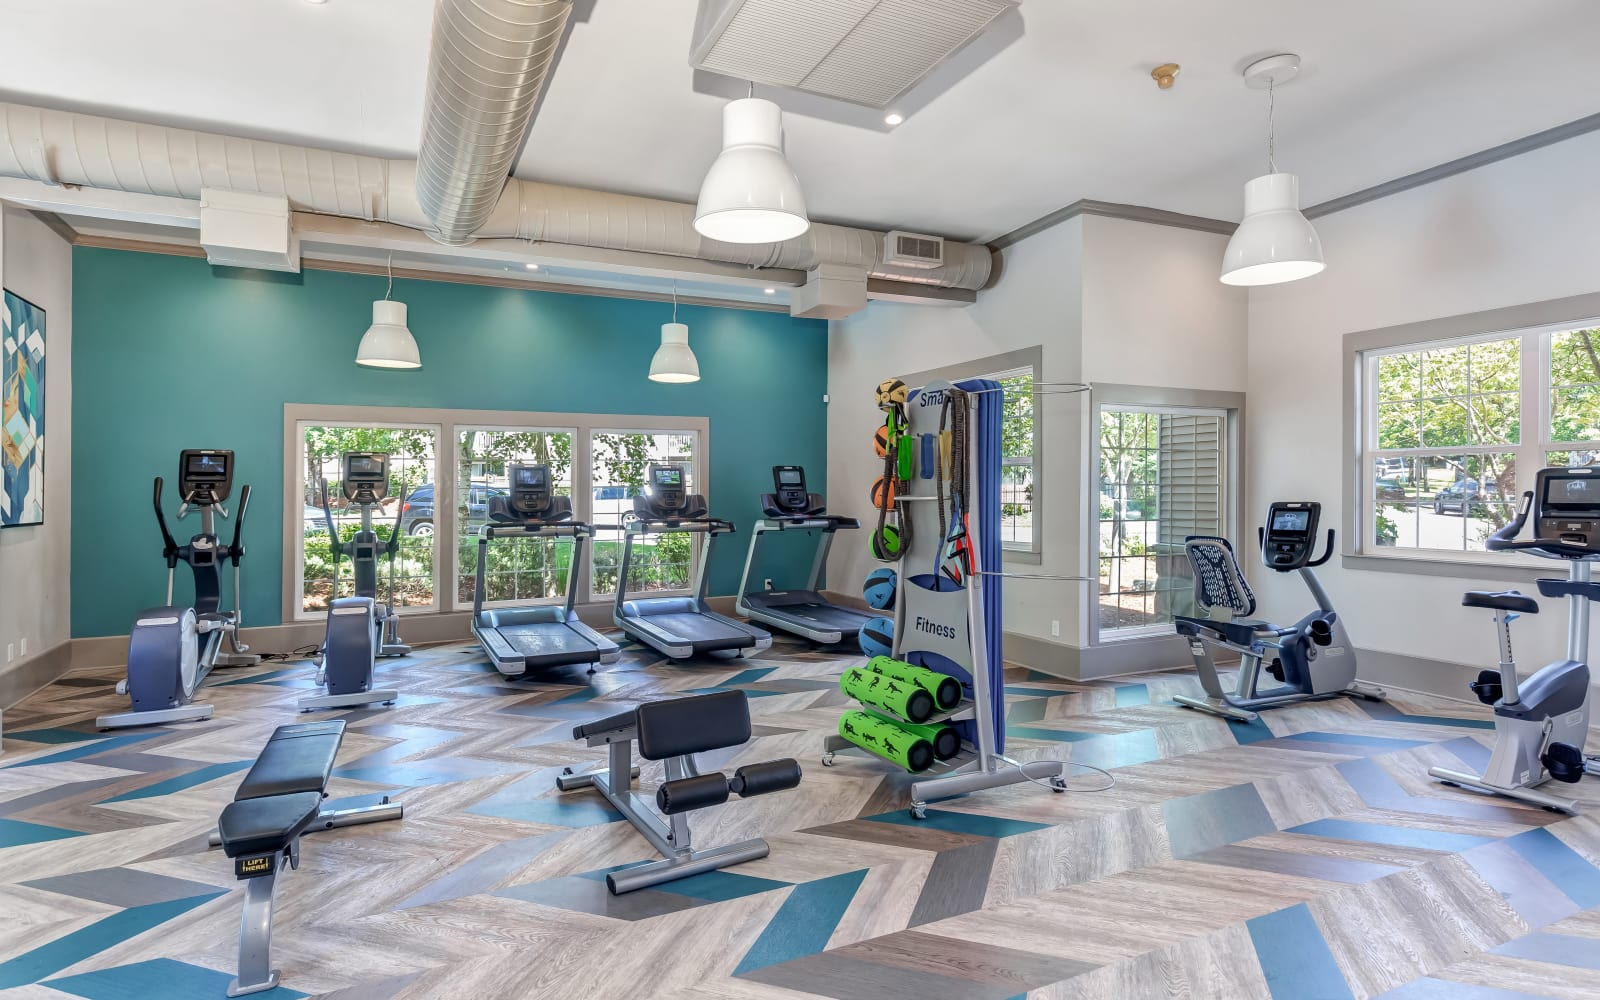 State-of-the-art modern fitness center at Alaire Apartments in Renton, Washington